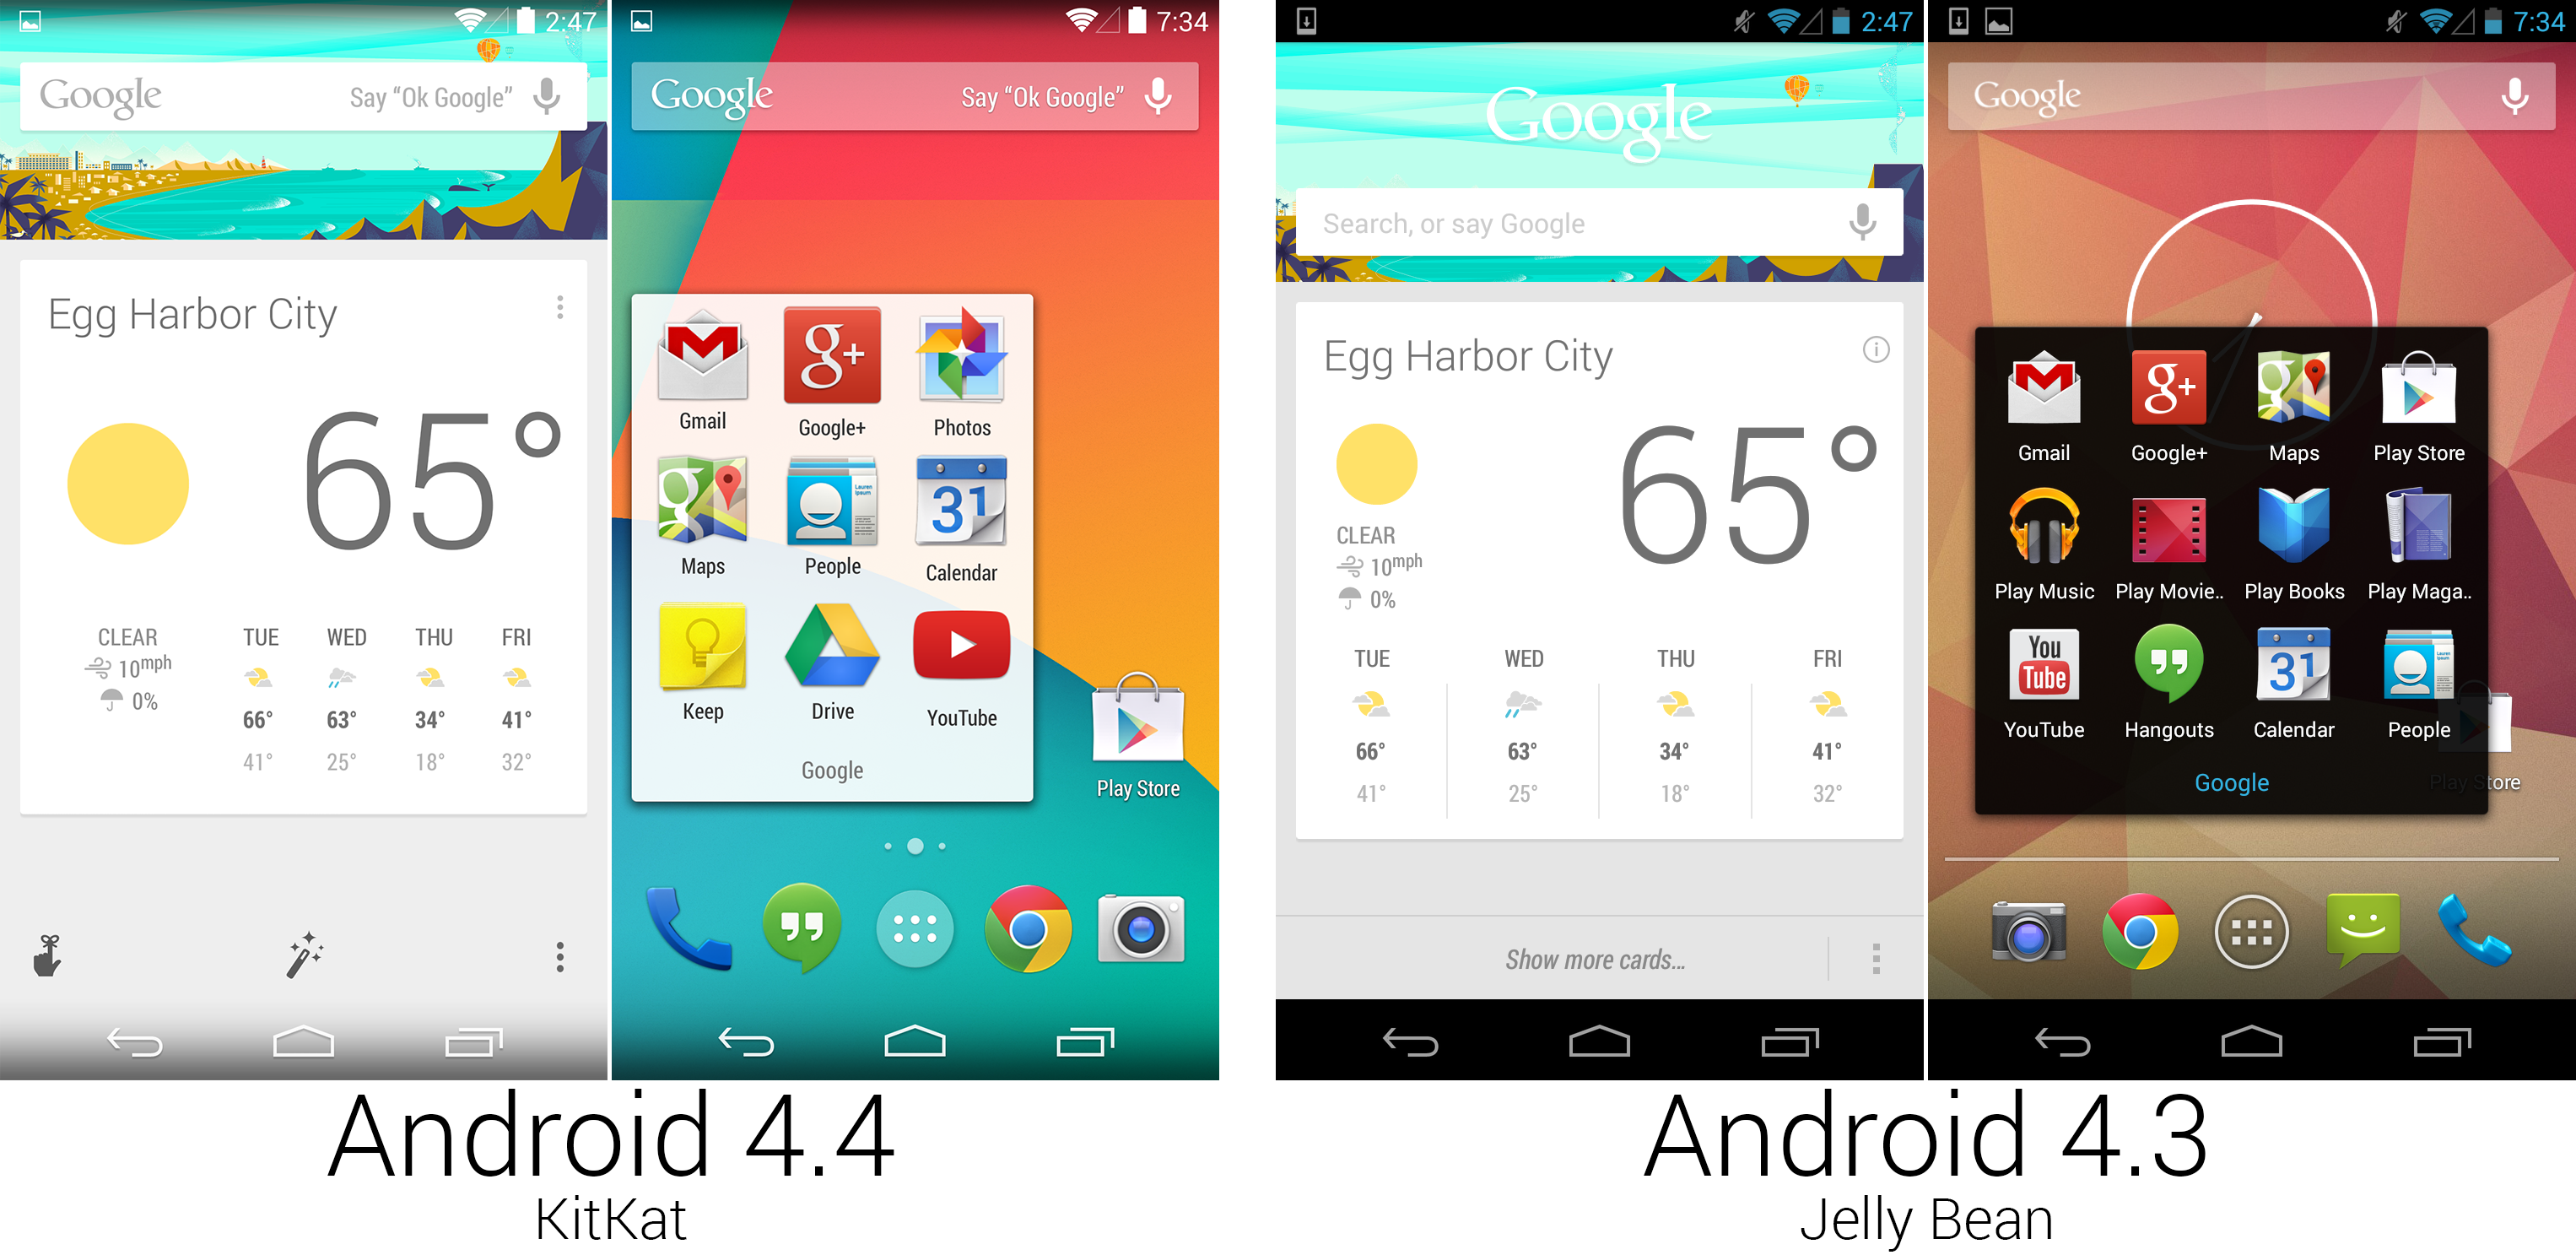 Tweaks to Google Now and the folders.